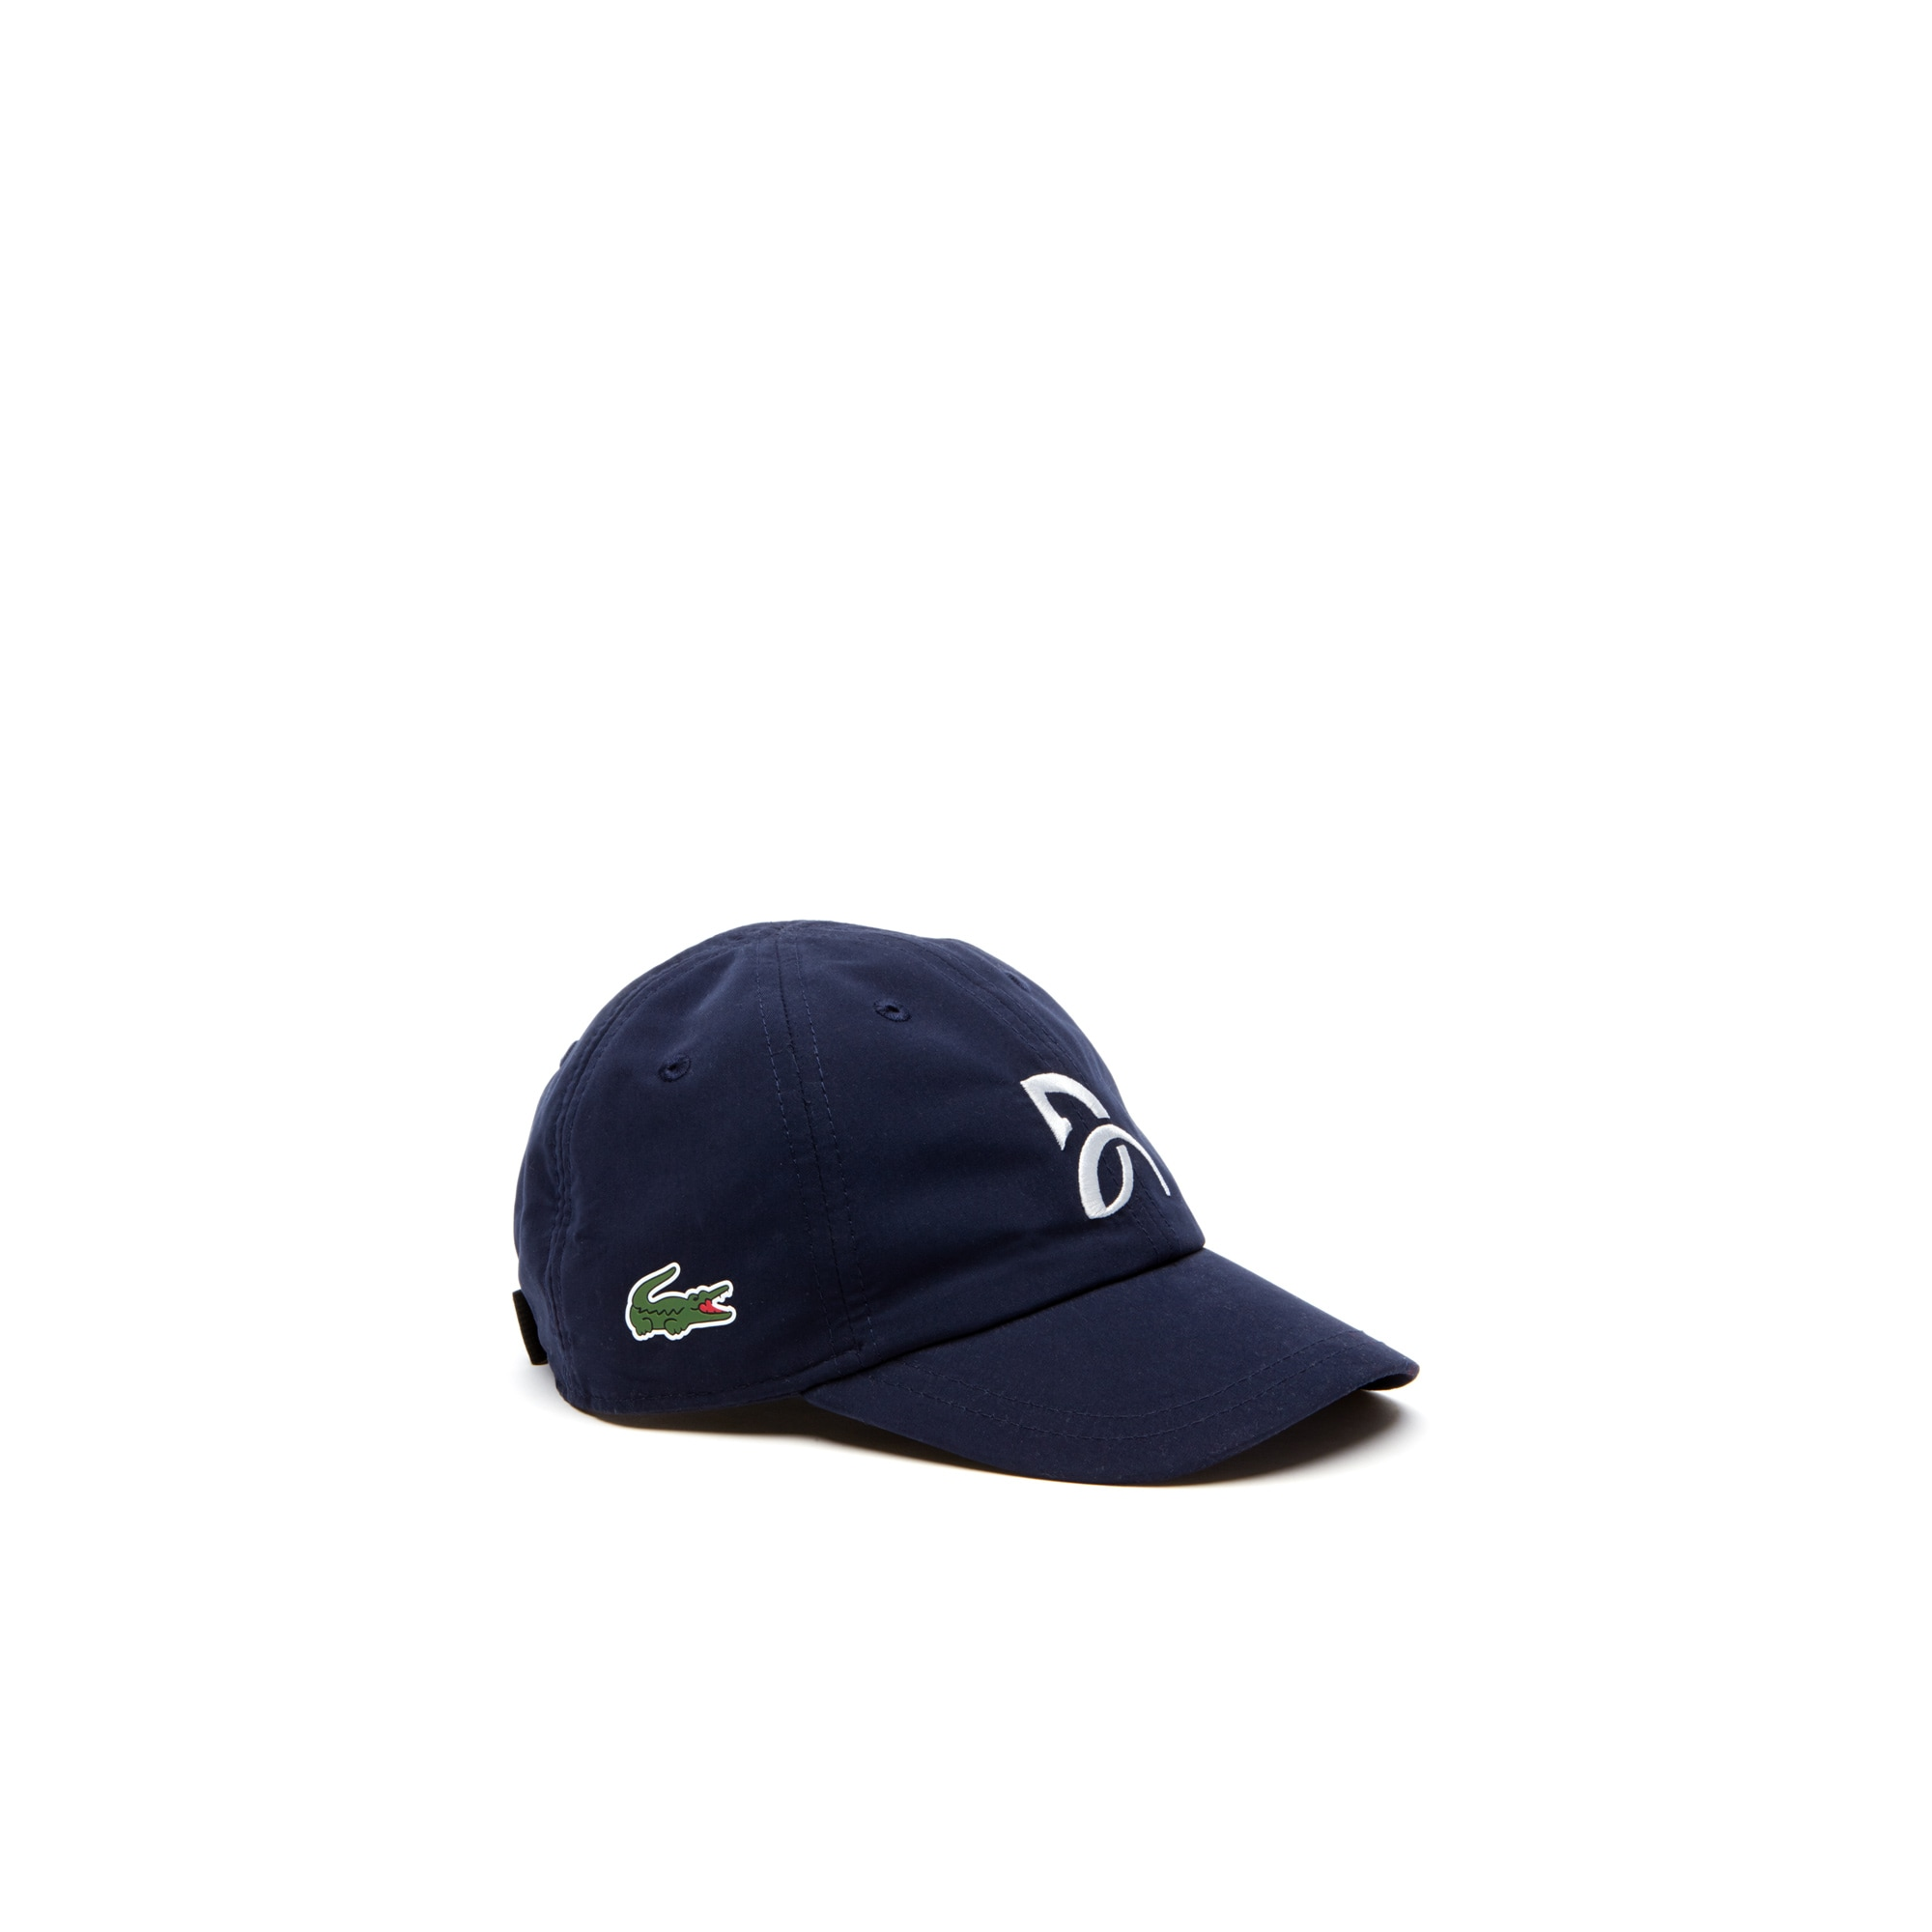 Boys' Lacoste SPORT NOVAK DJOKOVIC SUPPORT WITH STYLE COLLECTION Microfiber Cap